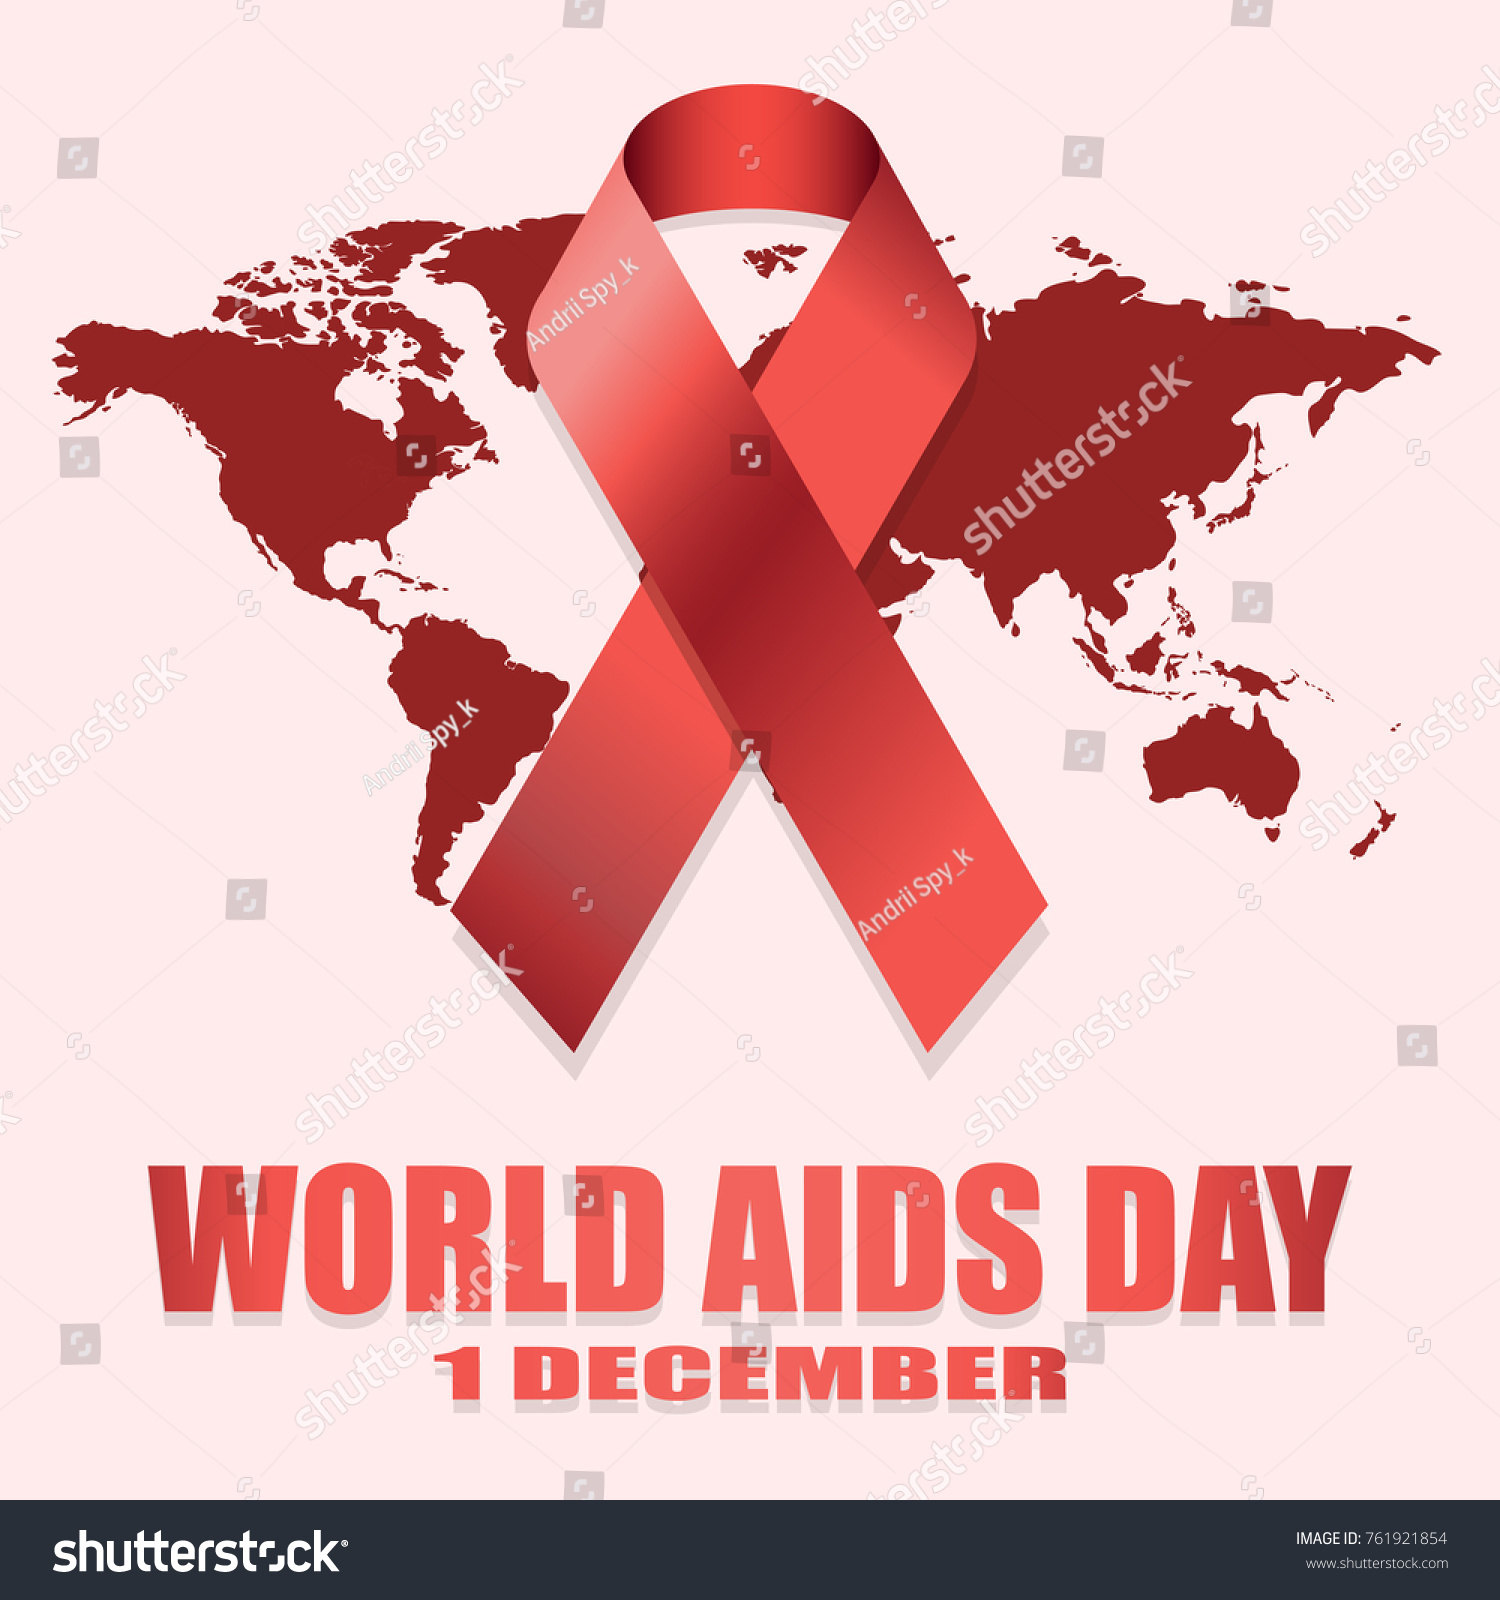 World aids day 1st december world stock vector 761921854 shutterstock world aids day 1st december world aids day poster with with red world map gumiabroncs Gallery